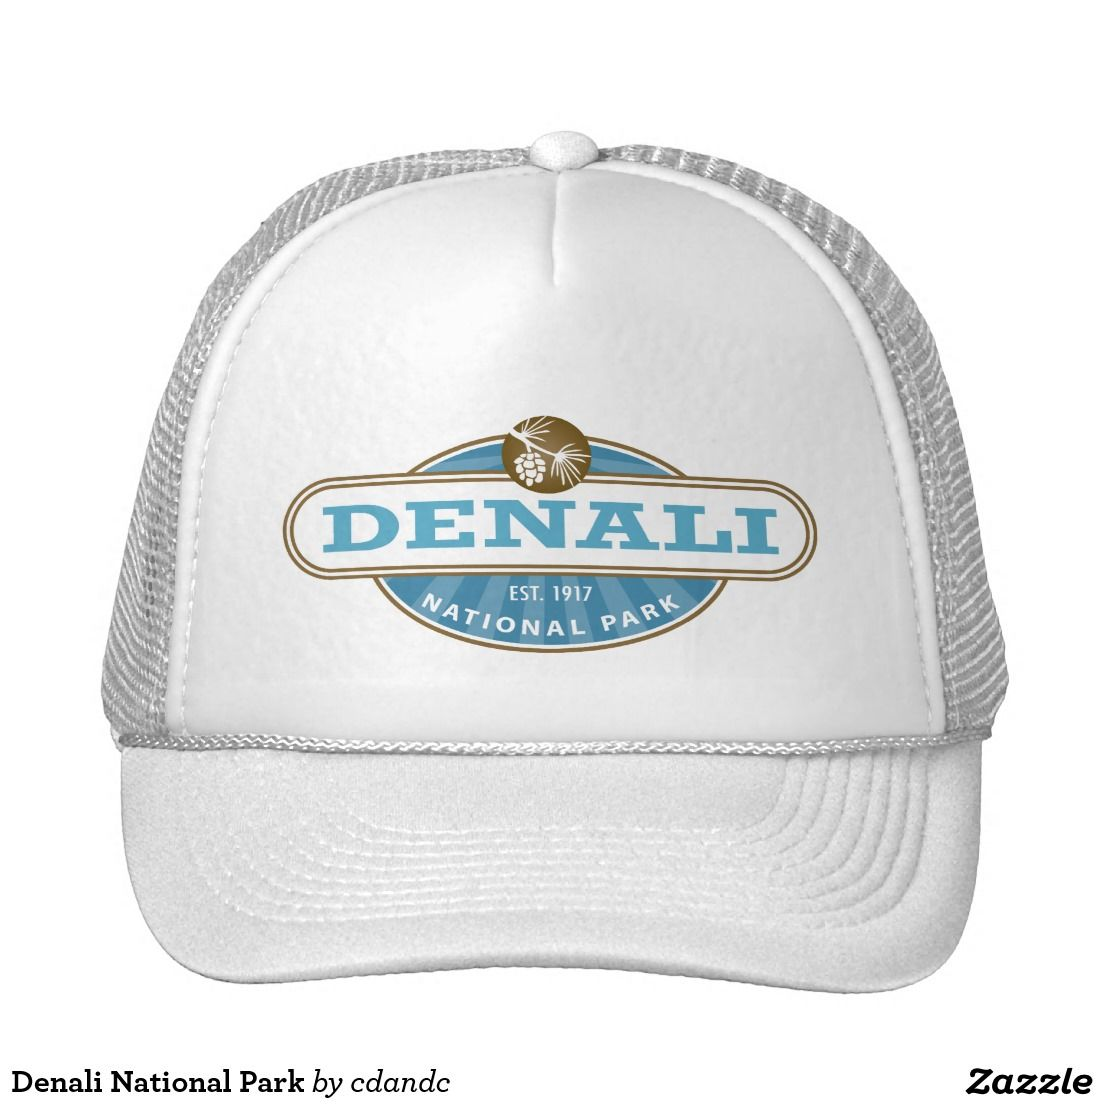 b58fd2729ee Denali National Park Trucker Hat - Denali National Park is located in  Interior Alaska and contains